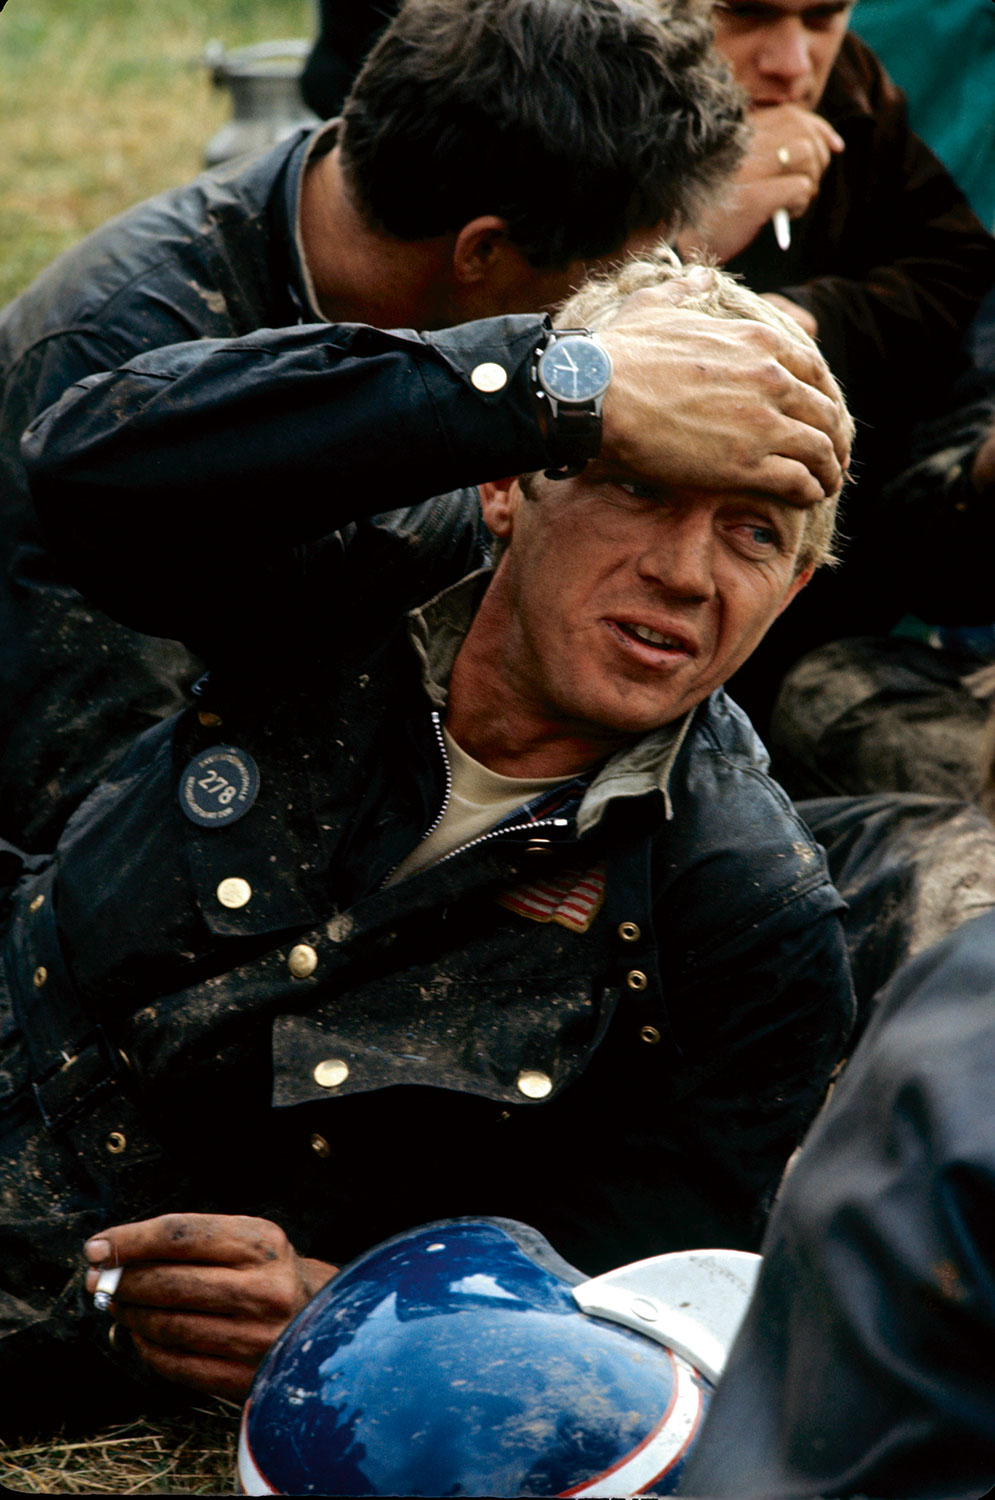 Steve McQueen resting after his run out on the 1964 ISDT track, a cigarette in his hand, the other resting on his forehead. Each evening after the race (300km on average, on terrible paths), the runners collapse in the grass, covered in mud and oil. (Photo by Francois Gragnon / Paris Match via Getty Images)